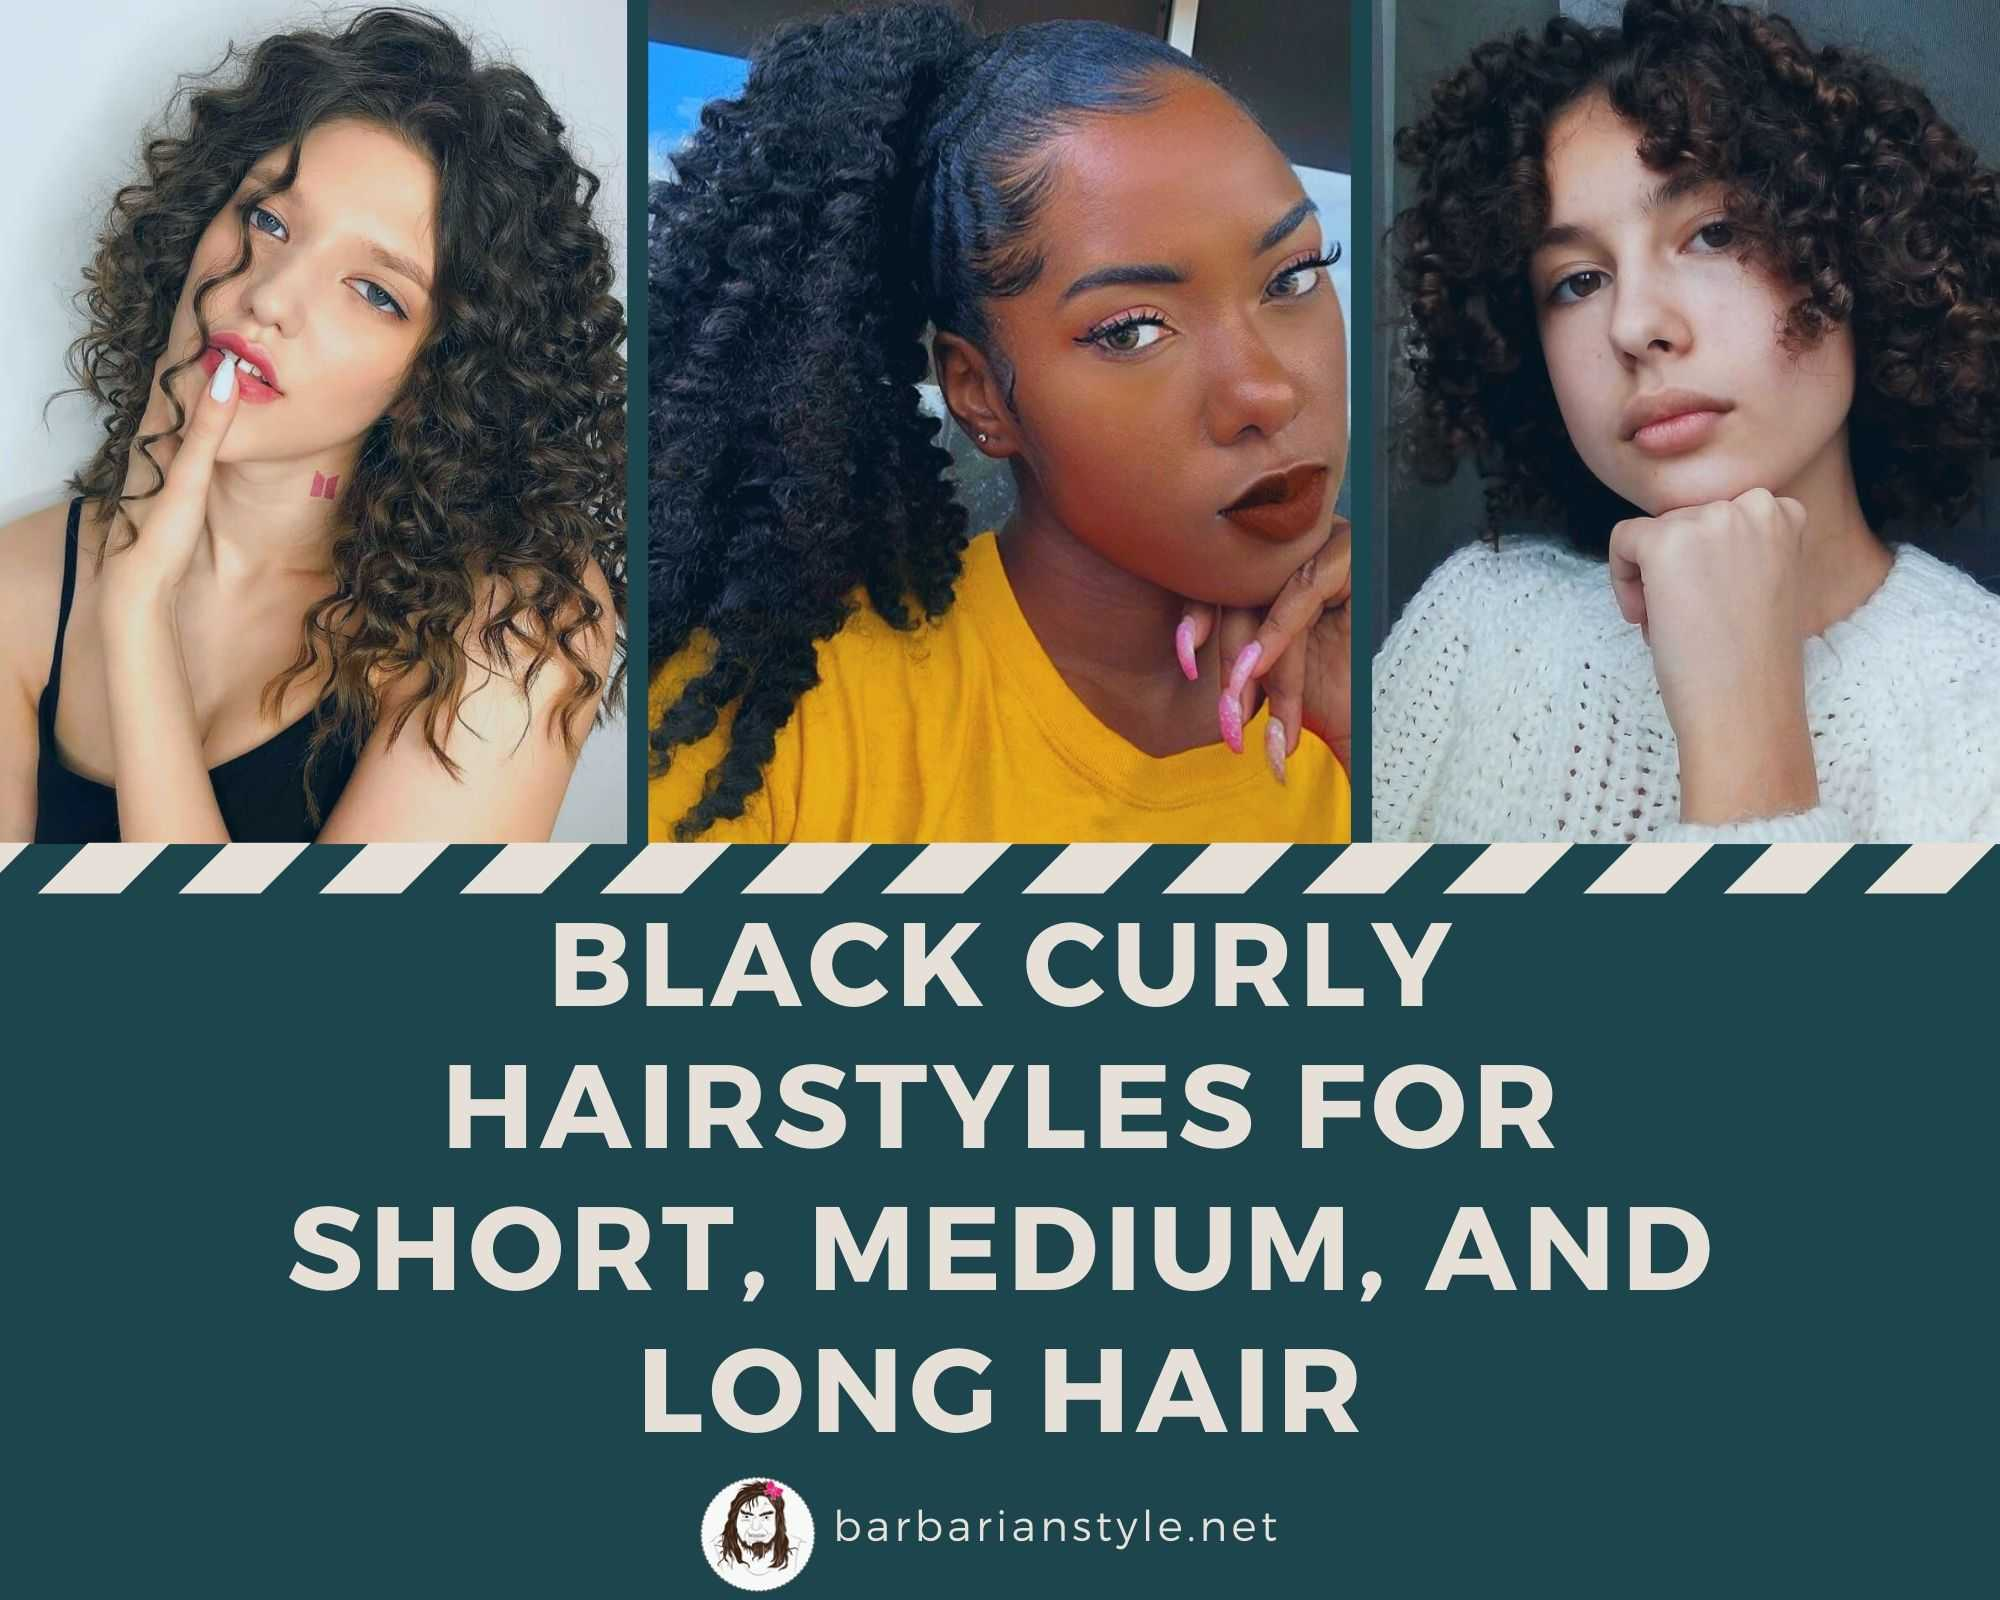 50 Black Curly Hairstyles For Short Medium And Long Hair